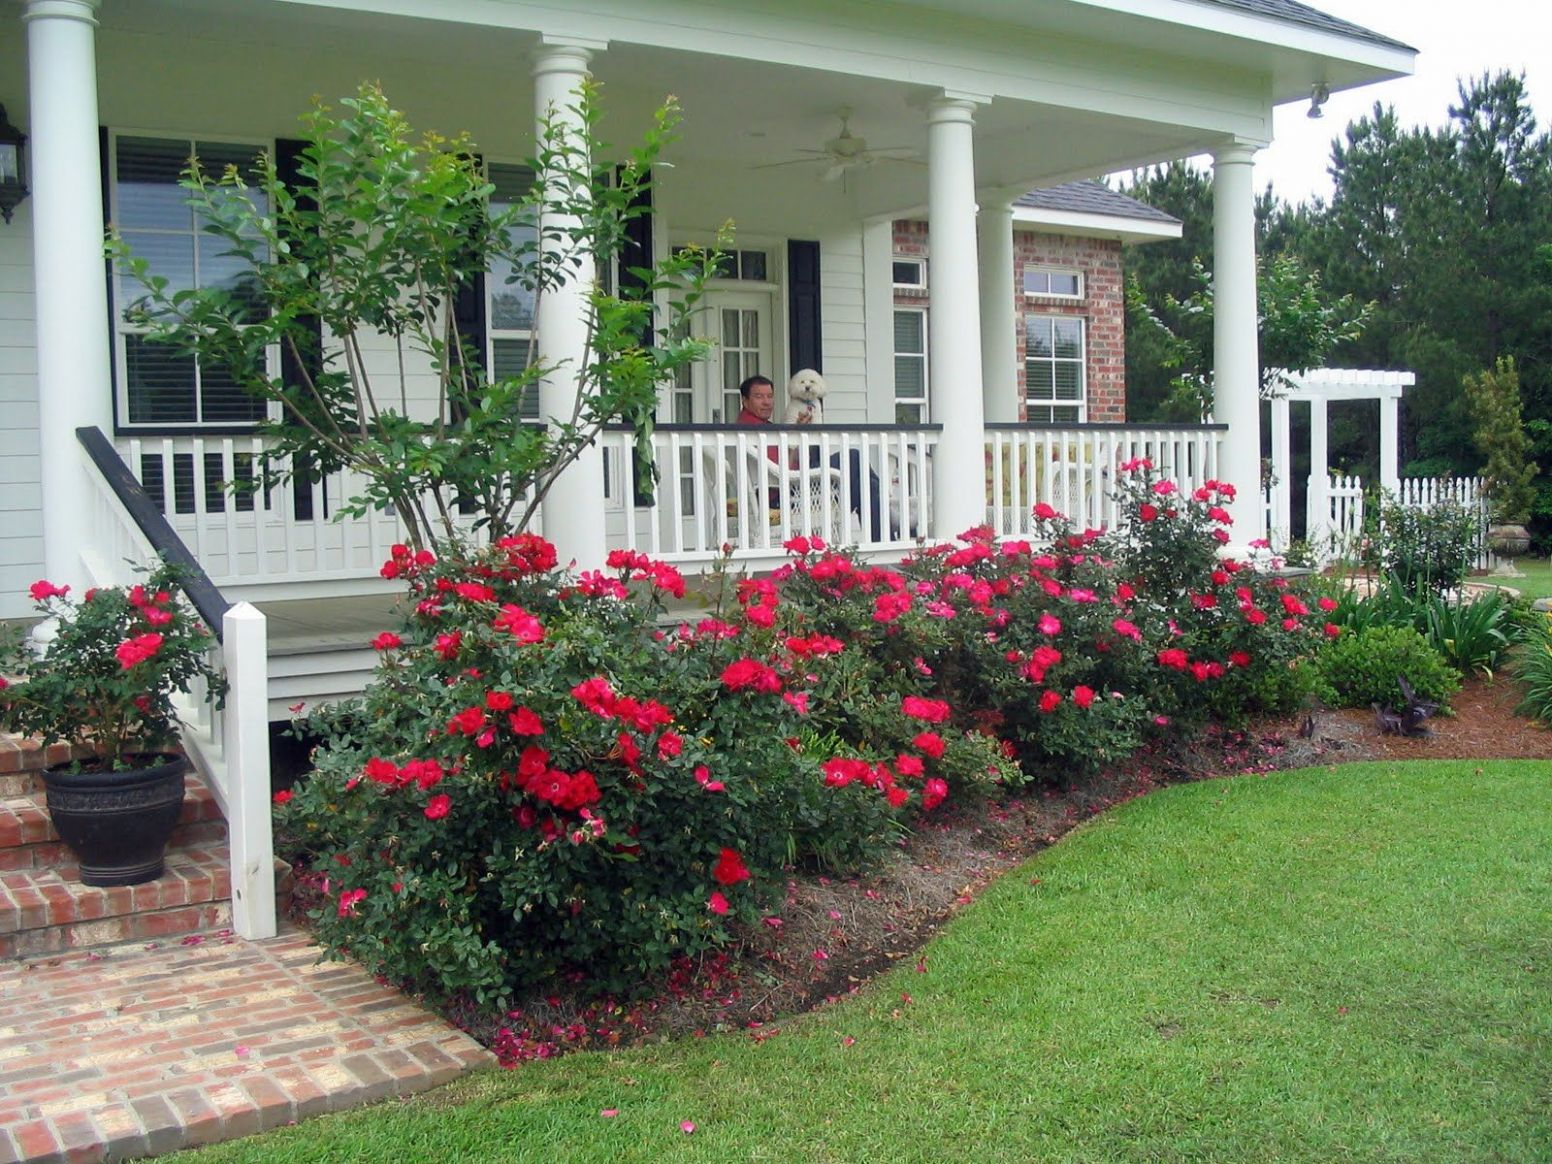 My Life on the Front Porch (With images) | Porch landscaping ..